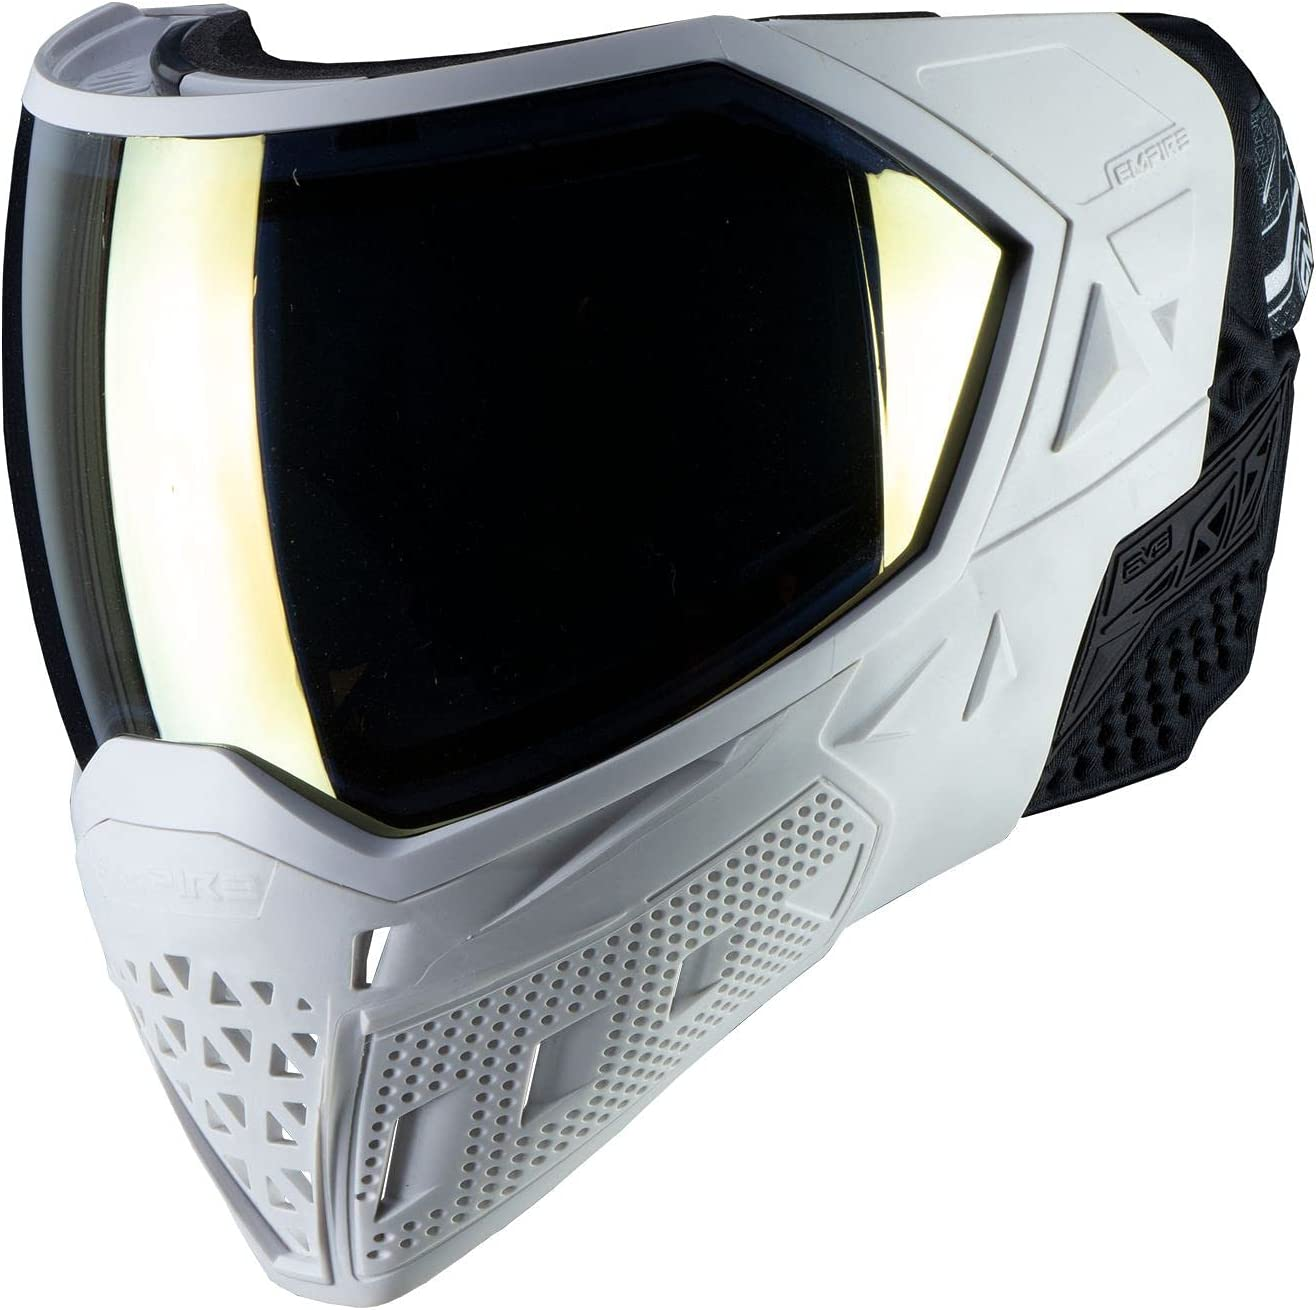 Empire EVS Thermal Ranking integrated 1st place Paintball Mask - Max 80% OFF White G With